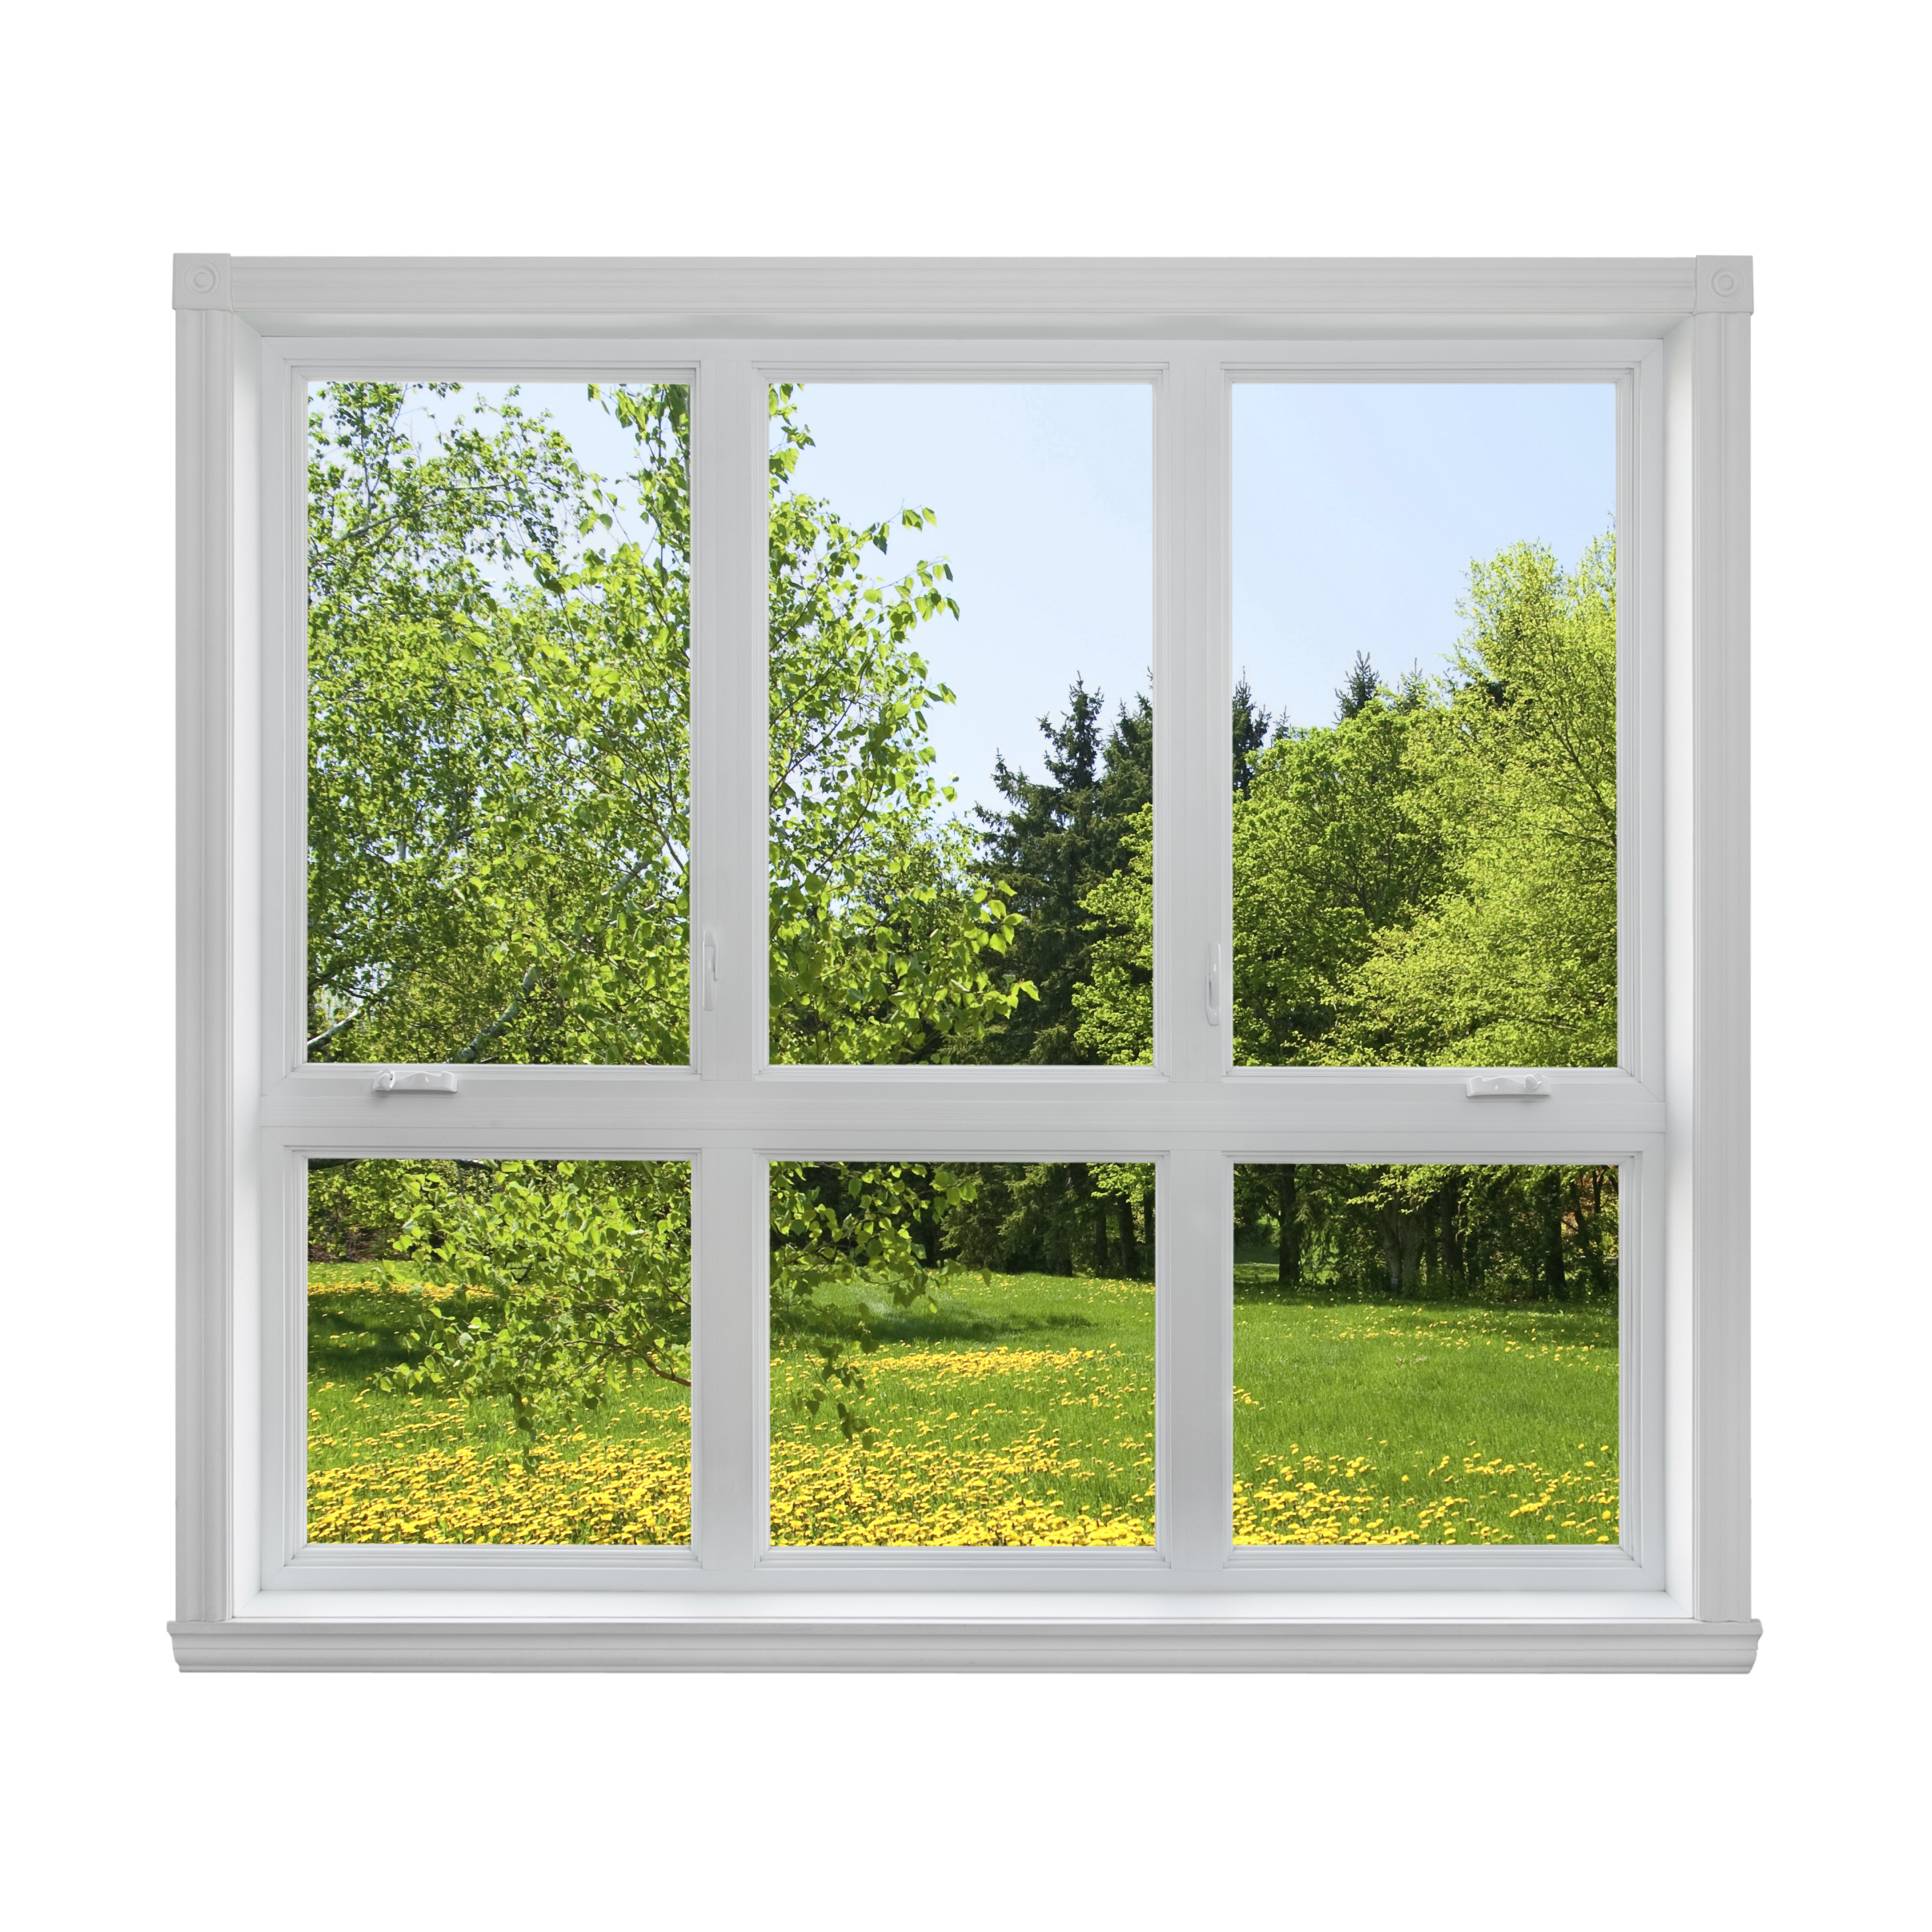 6 benefits of energy efficient windows moonworks for Energy efficient windows